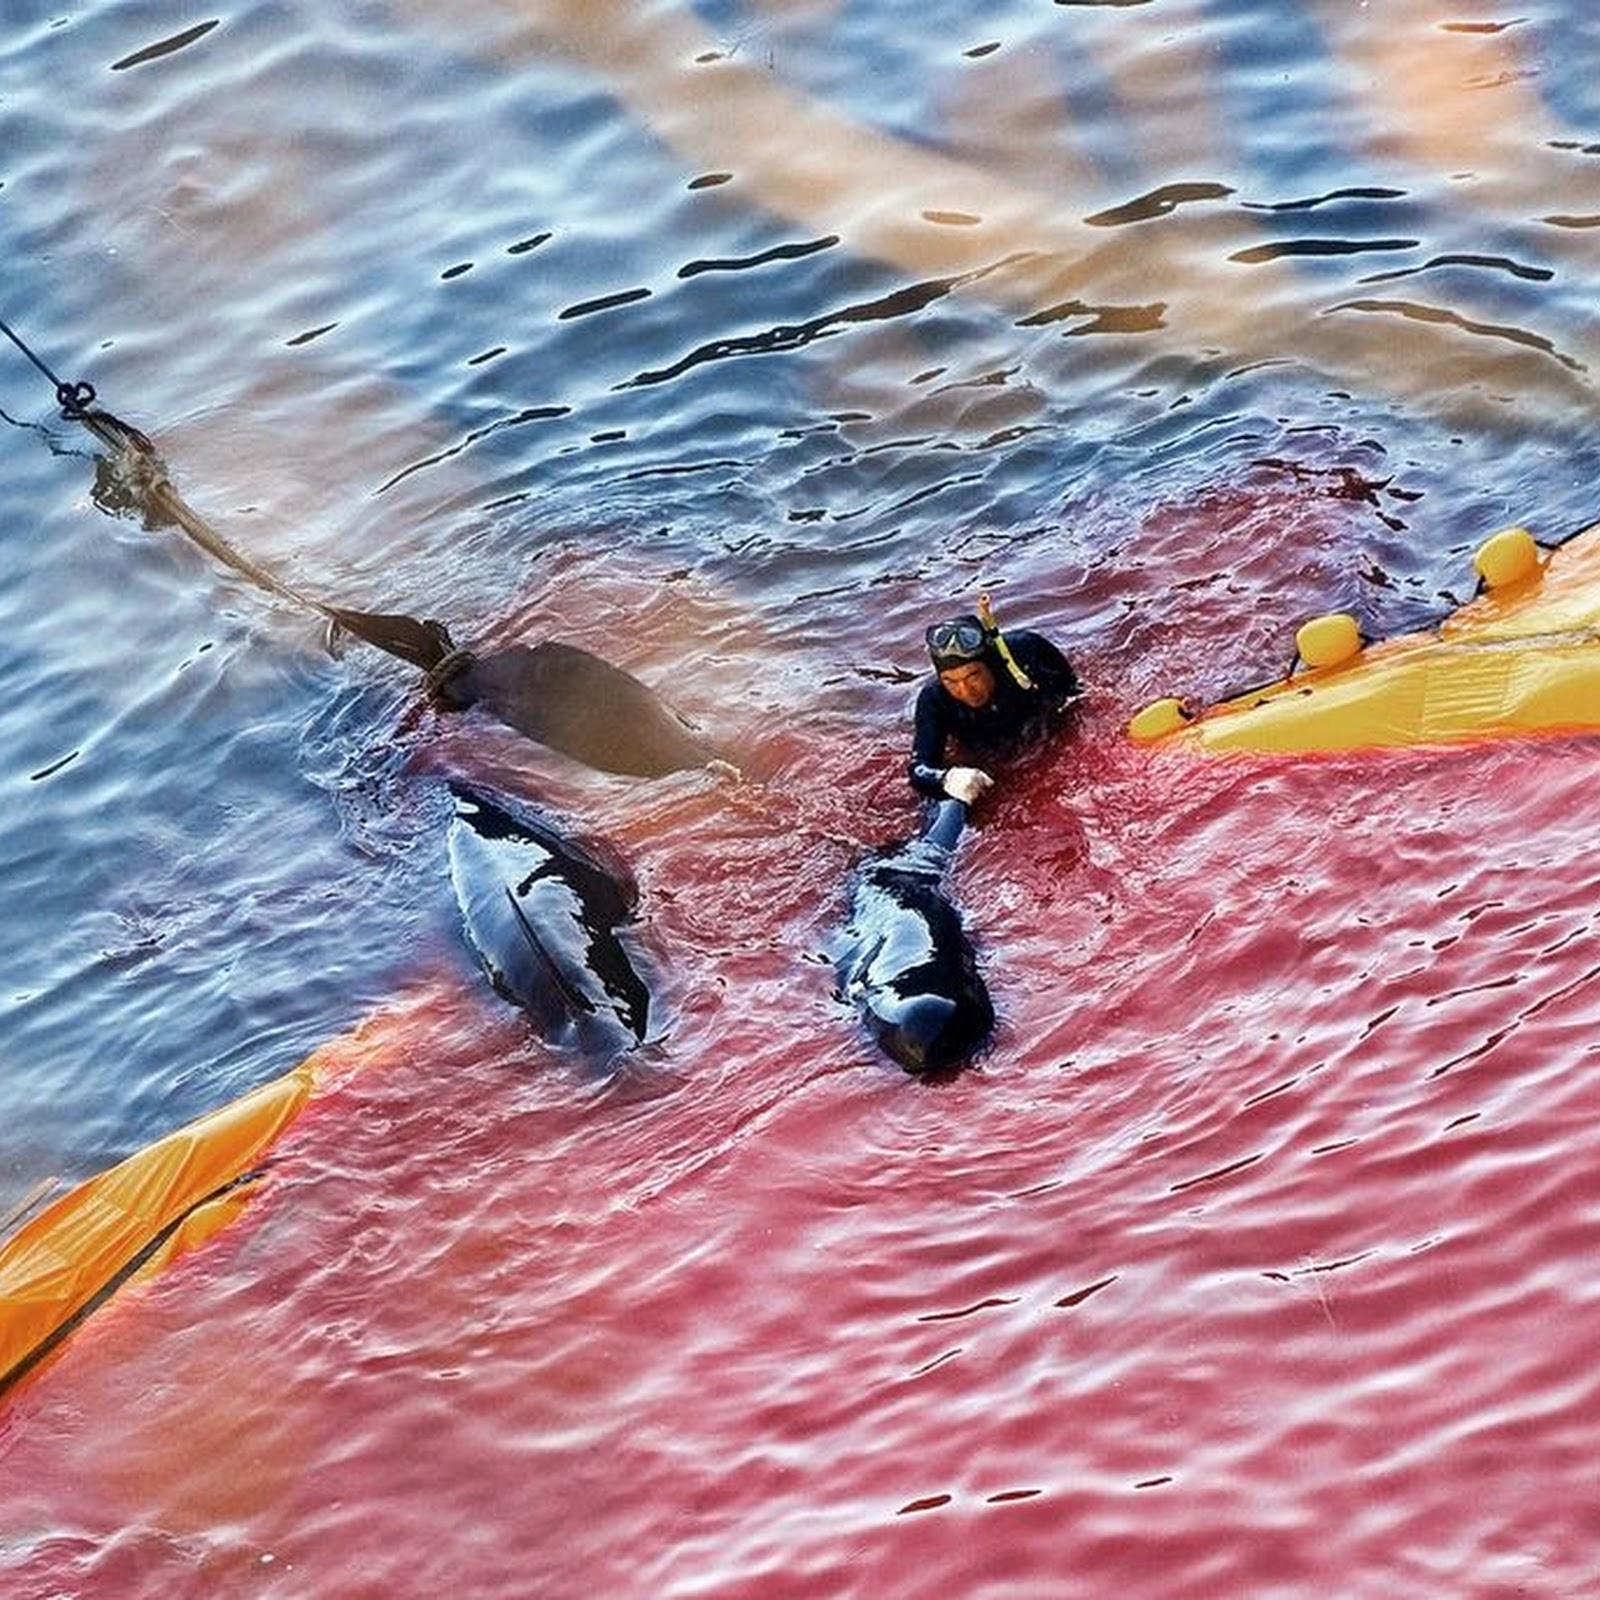 Japan's Notorious Taiji Dolphin Hunt